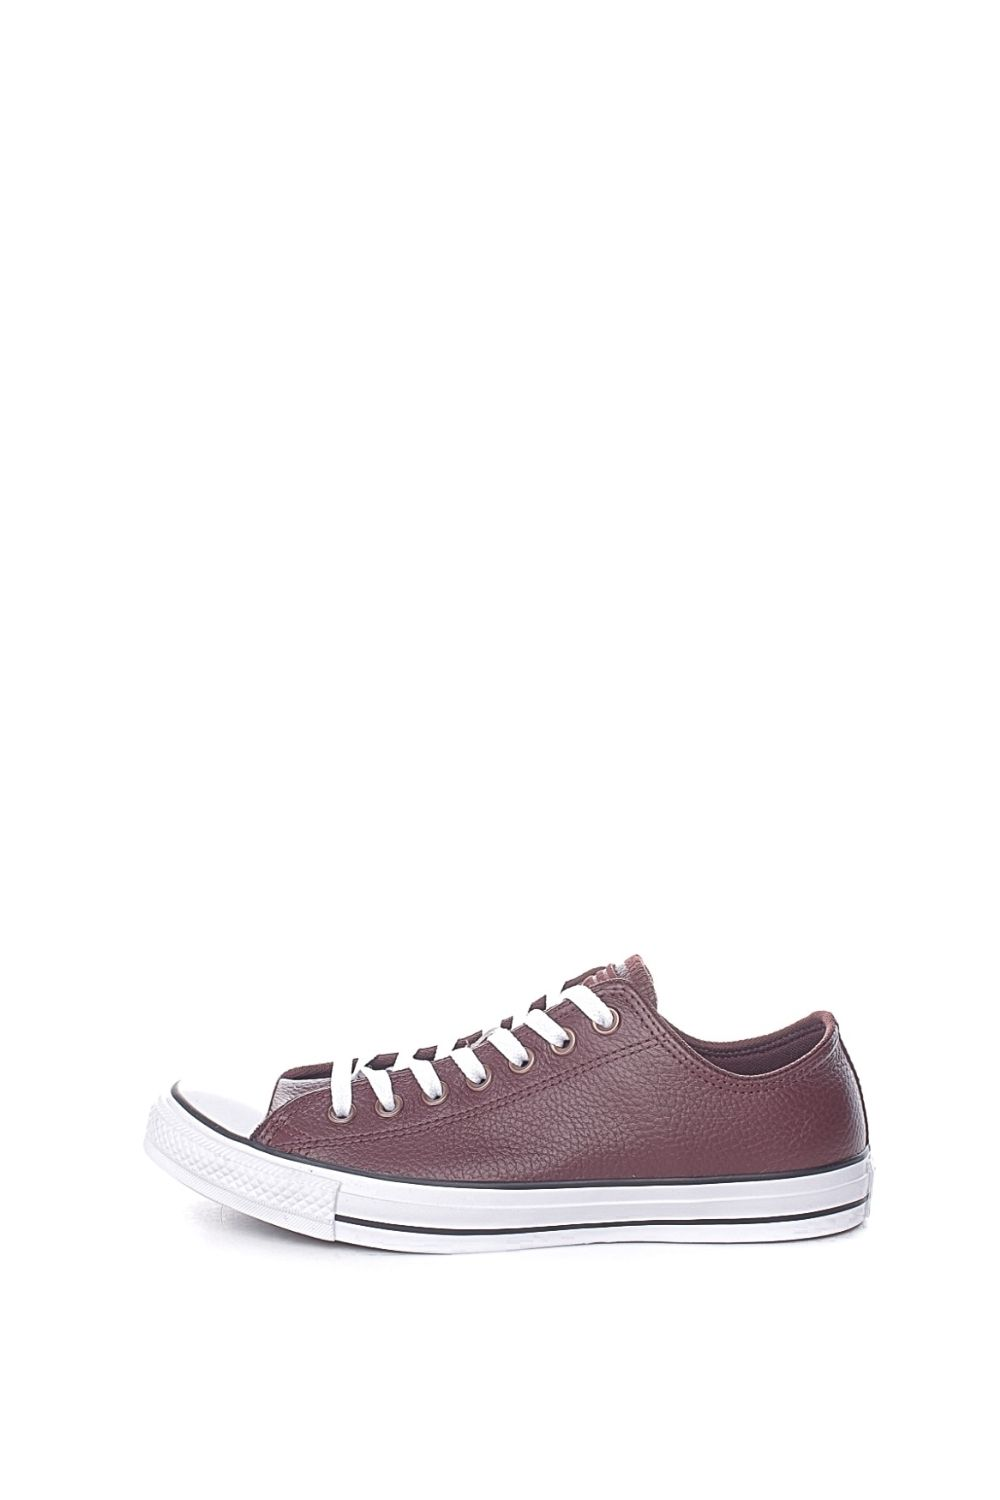 CONVERSE – Unisex sneakers CONVERSE Chuck Taylor All Star καφέ